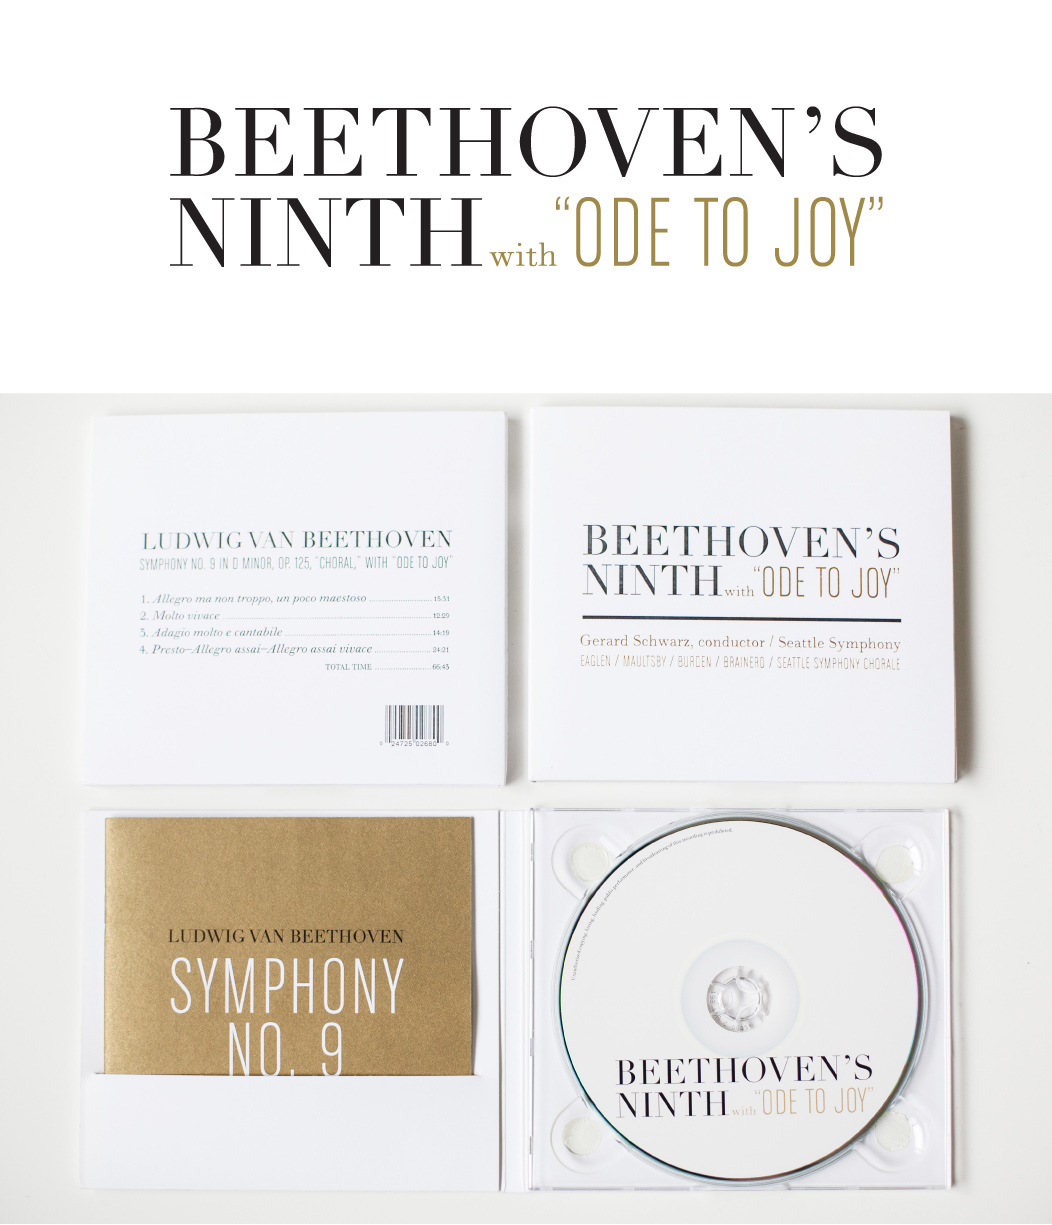 Beethovens Ninth CD Branding And Packaging